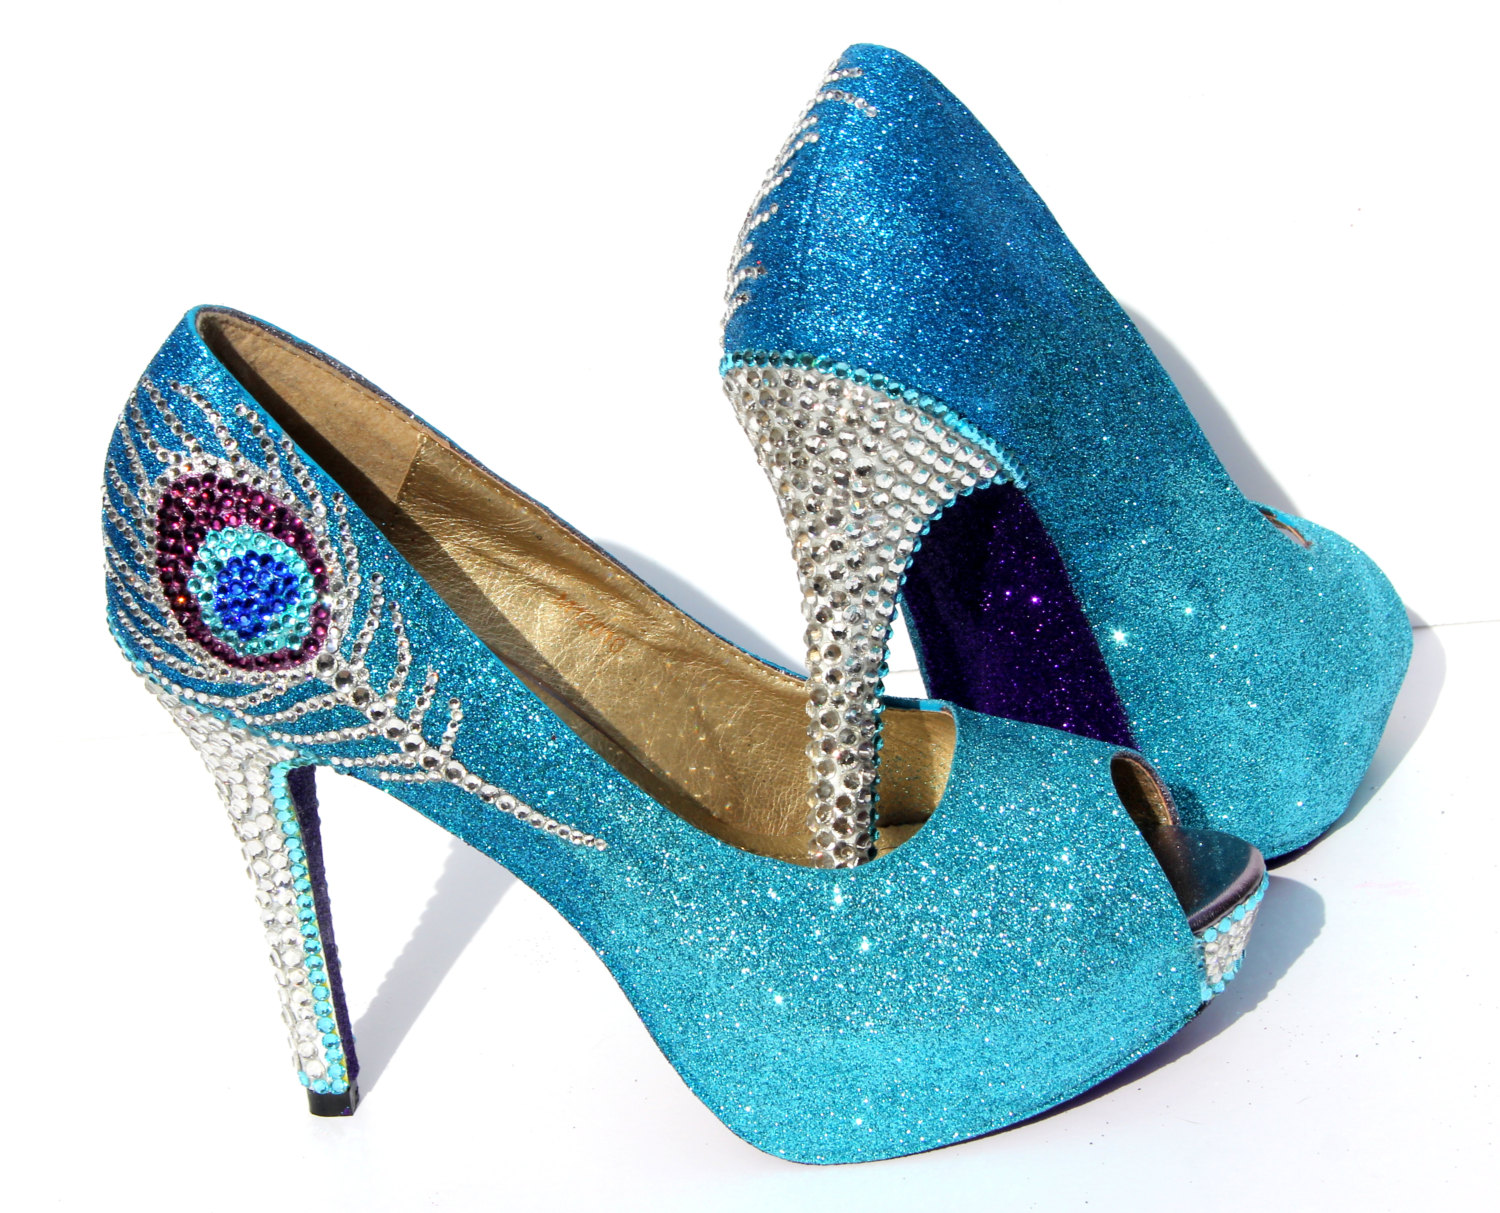 Peacock Heels In Aqua Blue And Purple Glitter Heels With